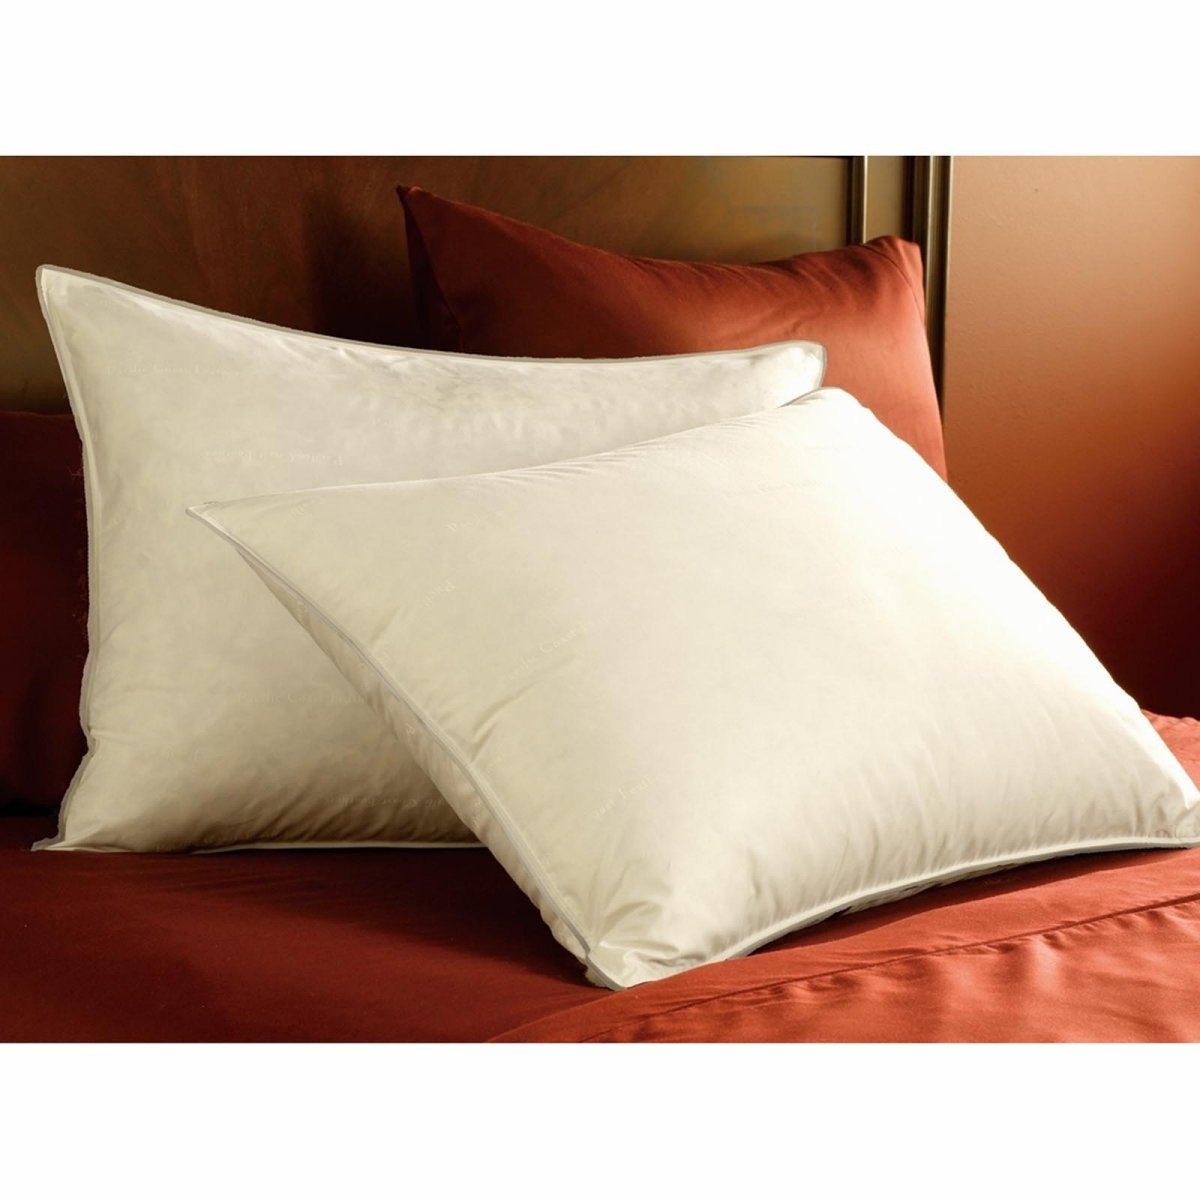 Pacific Coast Double Down Around Queen Pillow Set (2 Queen Pillows) Pacific Coast Feather Company Double Down Around Down and Feather Pillow with Cotton Cover, Standard. by Pacific Coast. As a result, the Pacific Coast Down Surround Pillow makes the ideal.